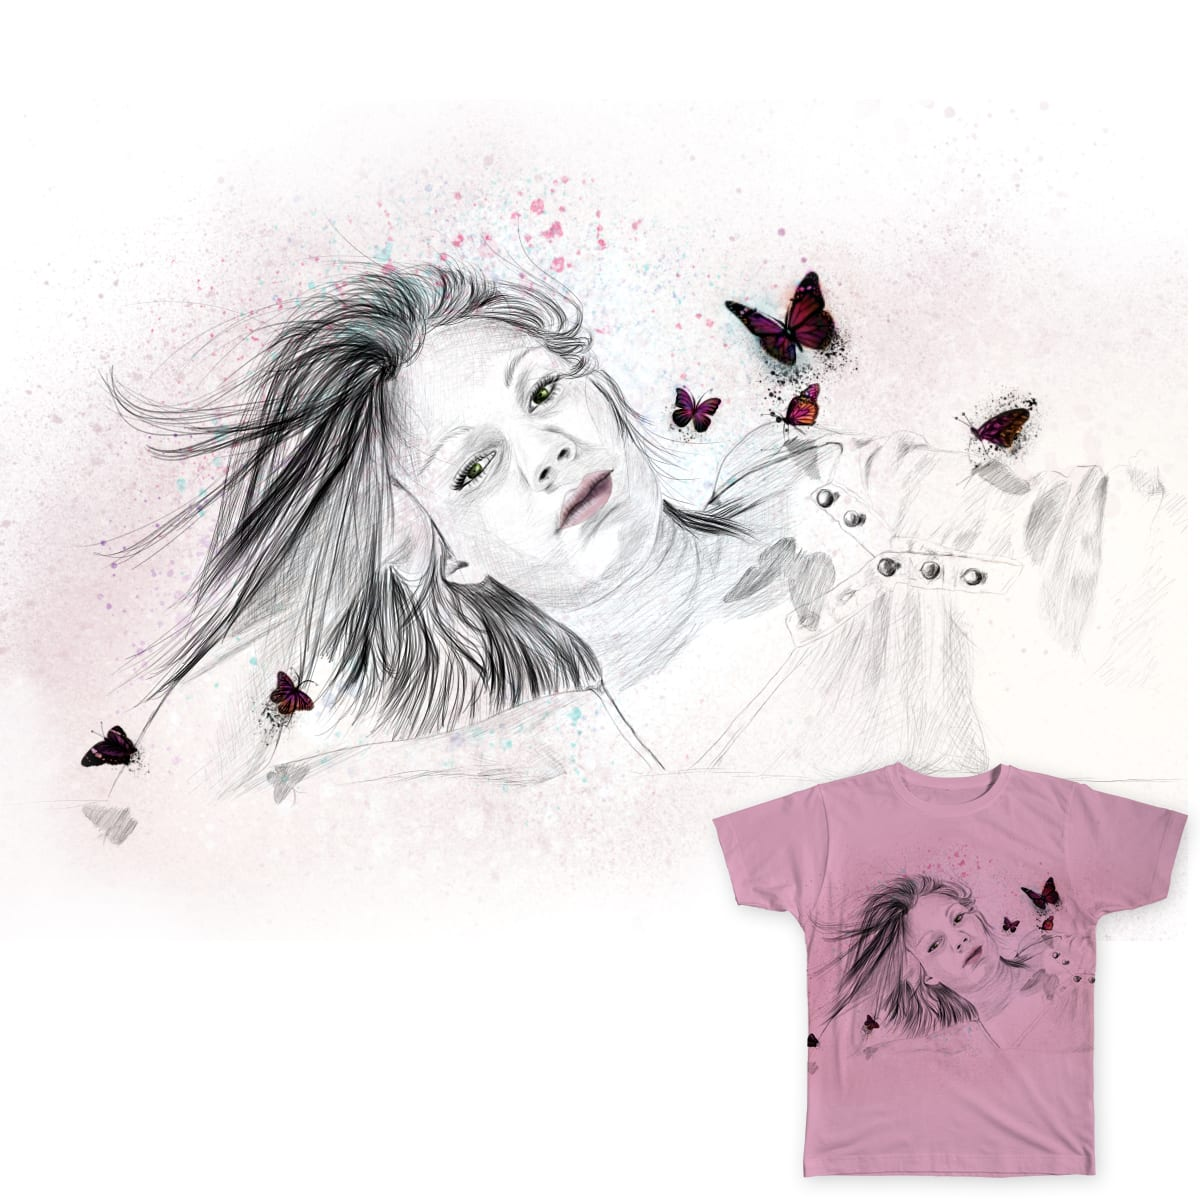 Beautiful girl with buterflies by vixibly on Threadless